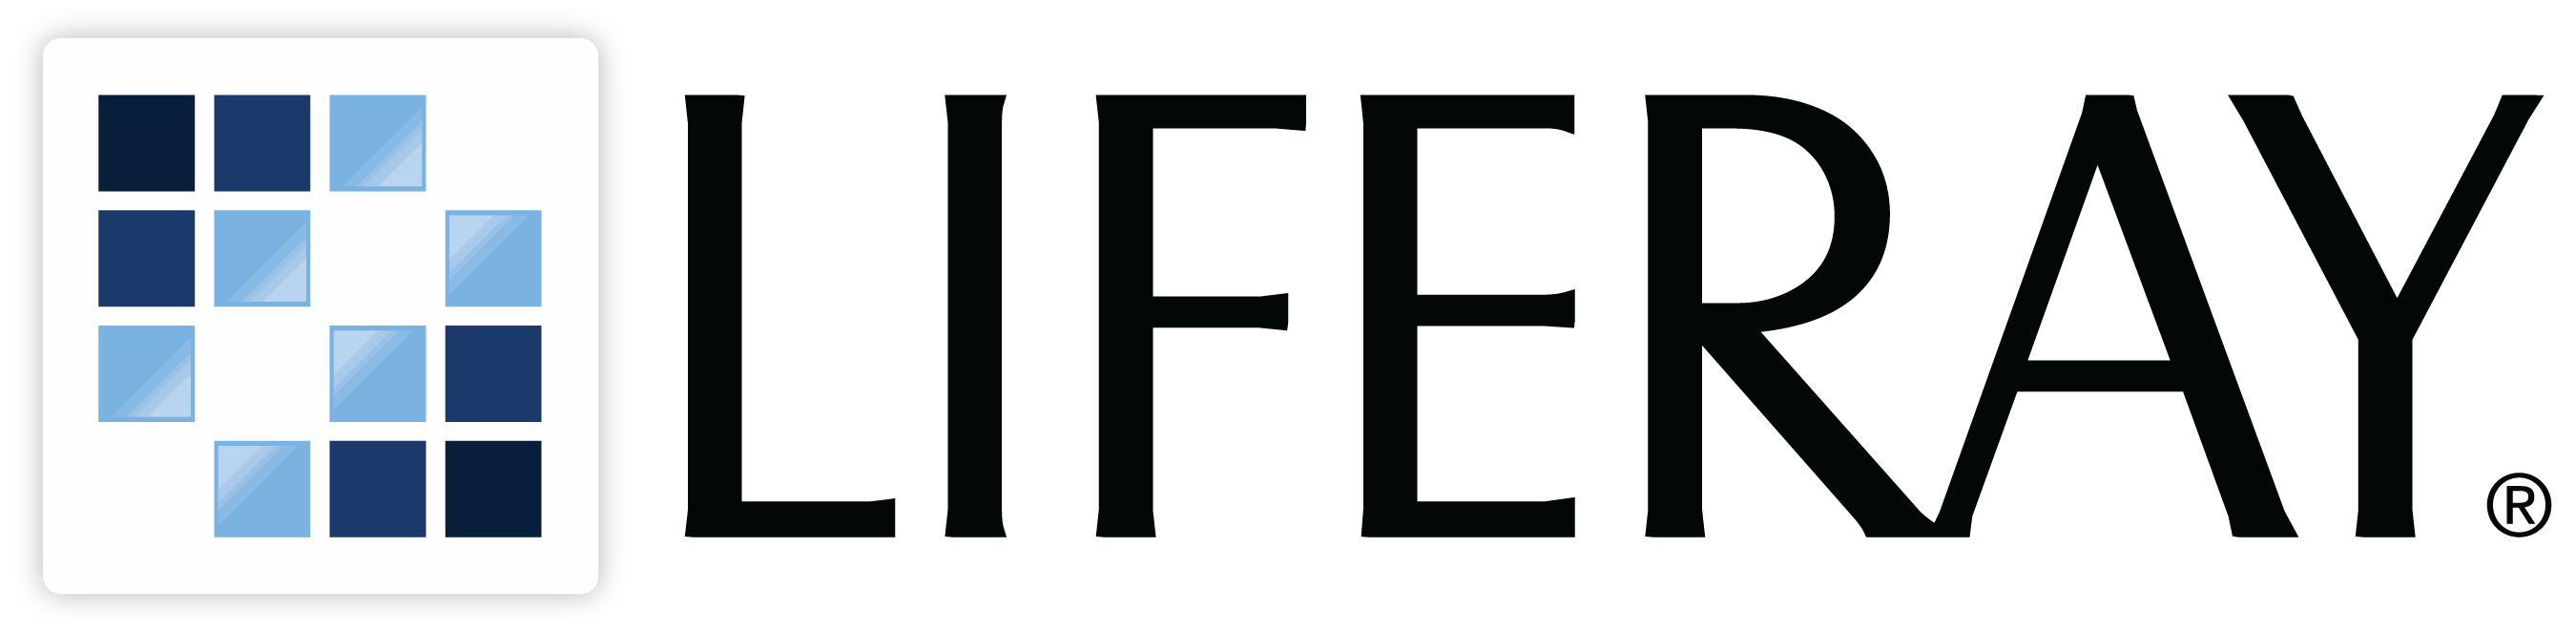 Logo de Liferay